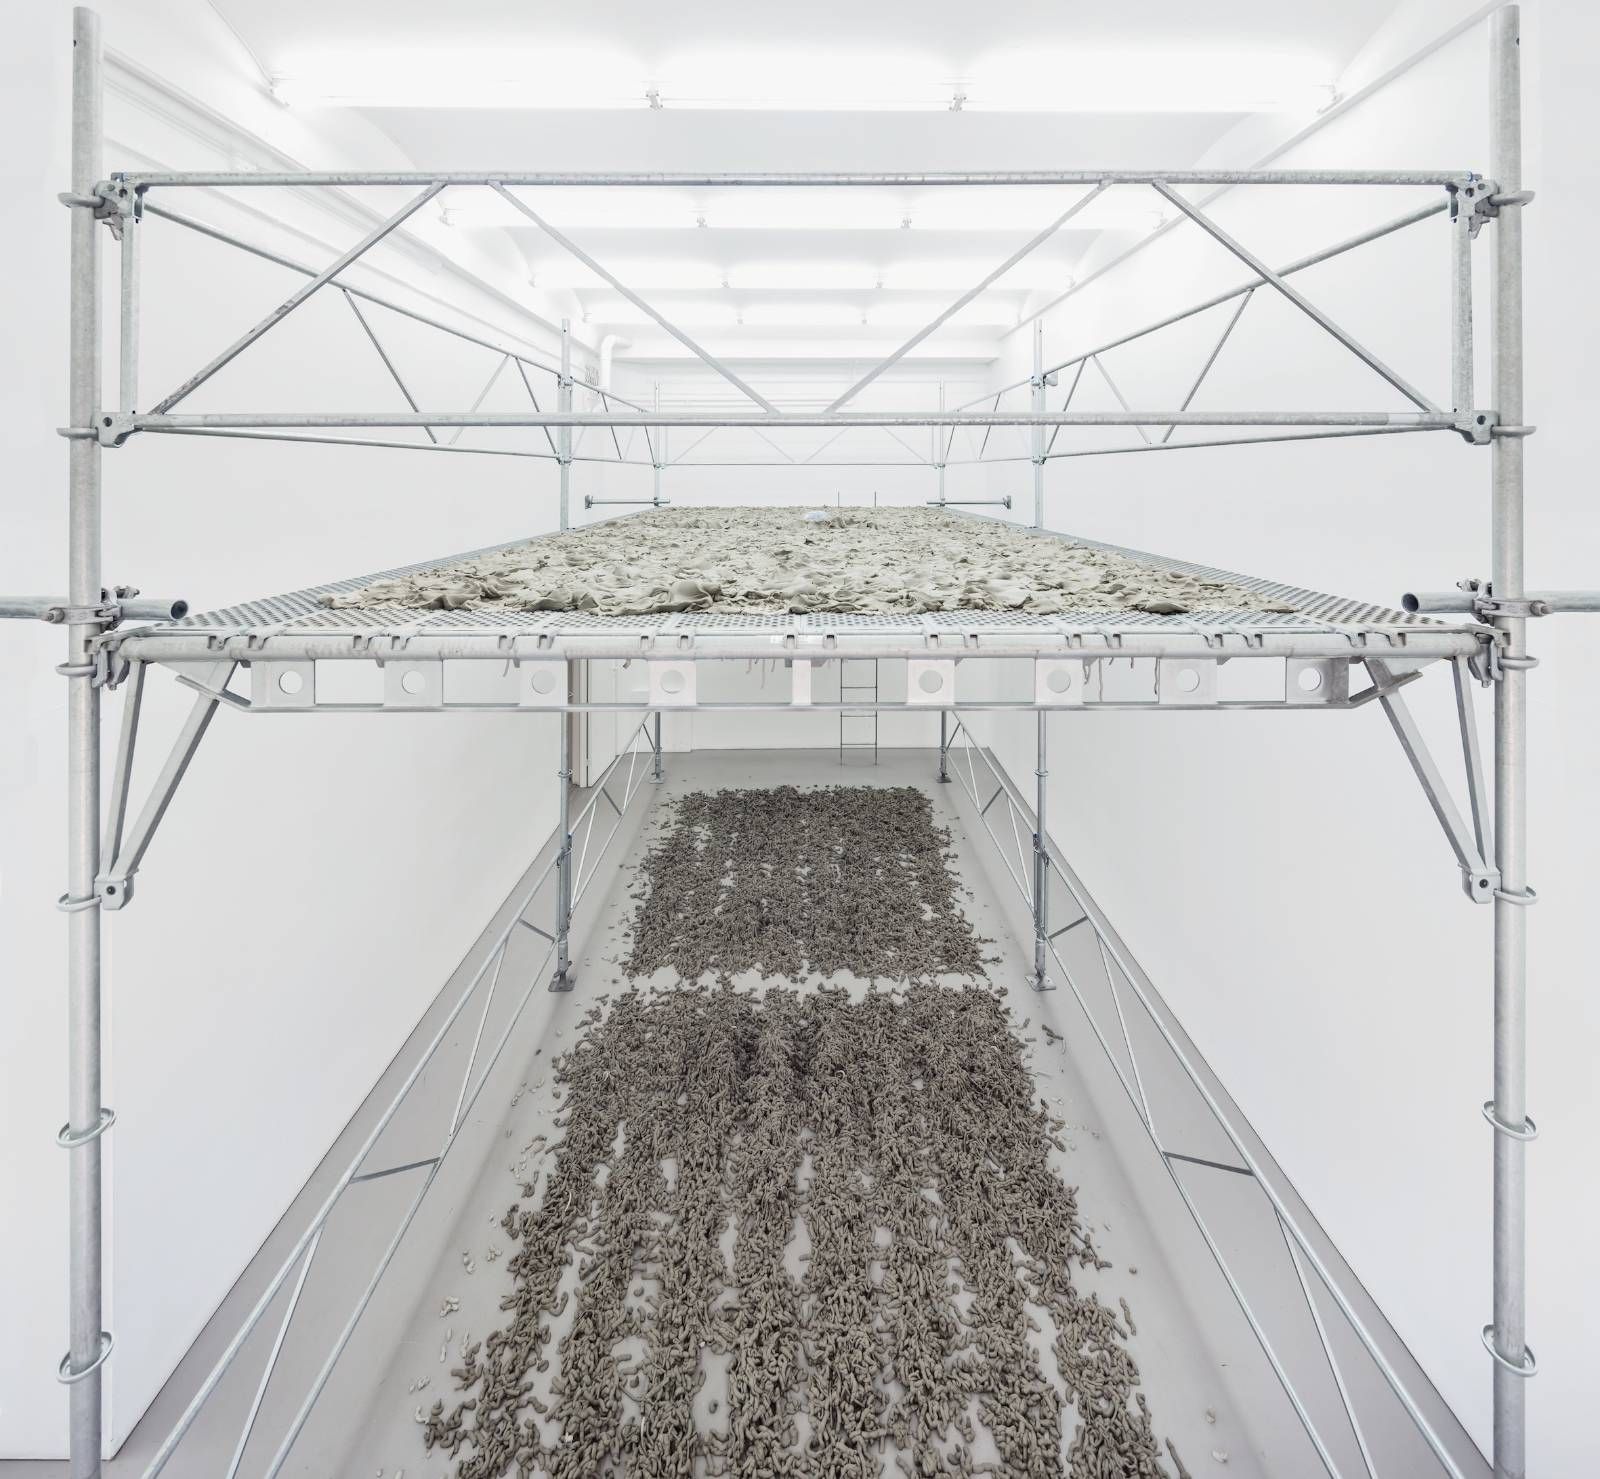 Still Life Production, 2013, performance, scaffolding, steel planks, clay, 3 x 6 x 4 m